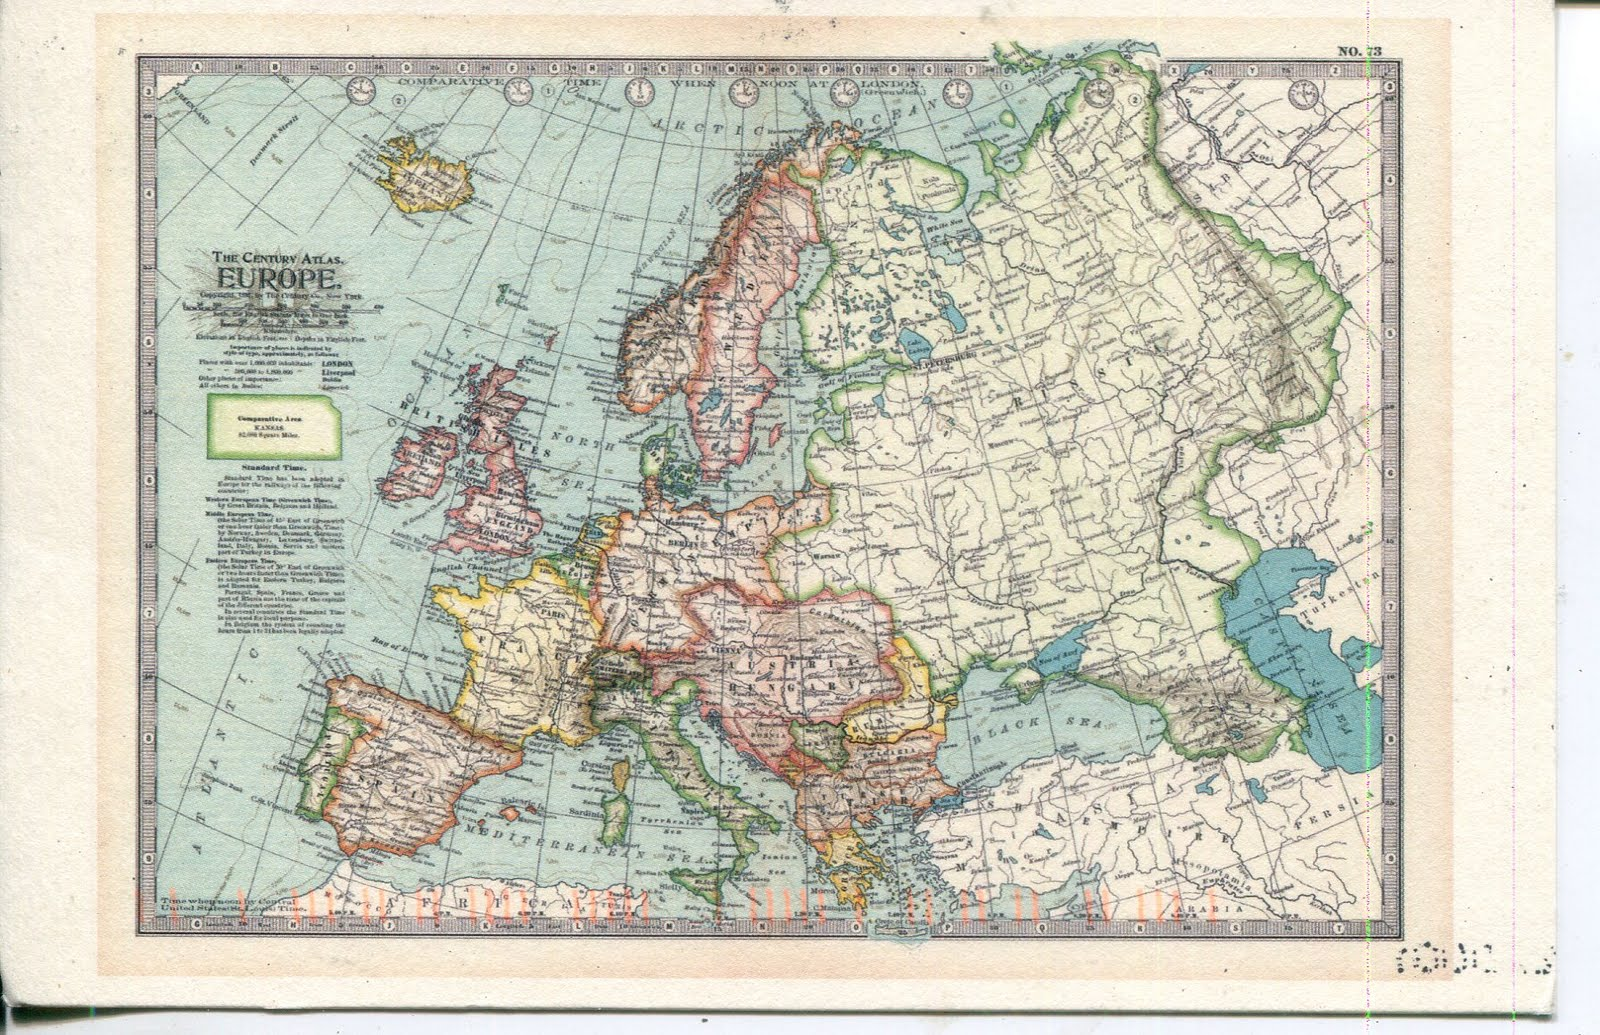 collect ROC USA Postcard Old Map of Europe